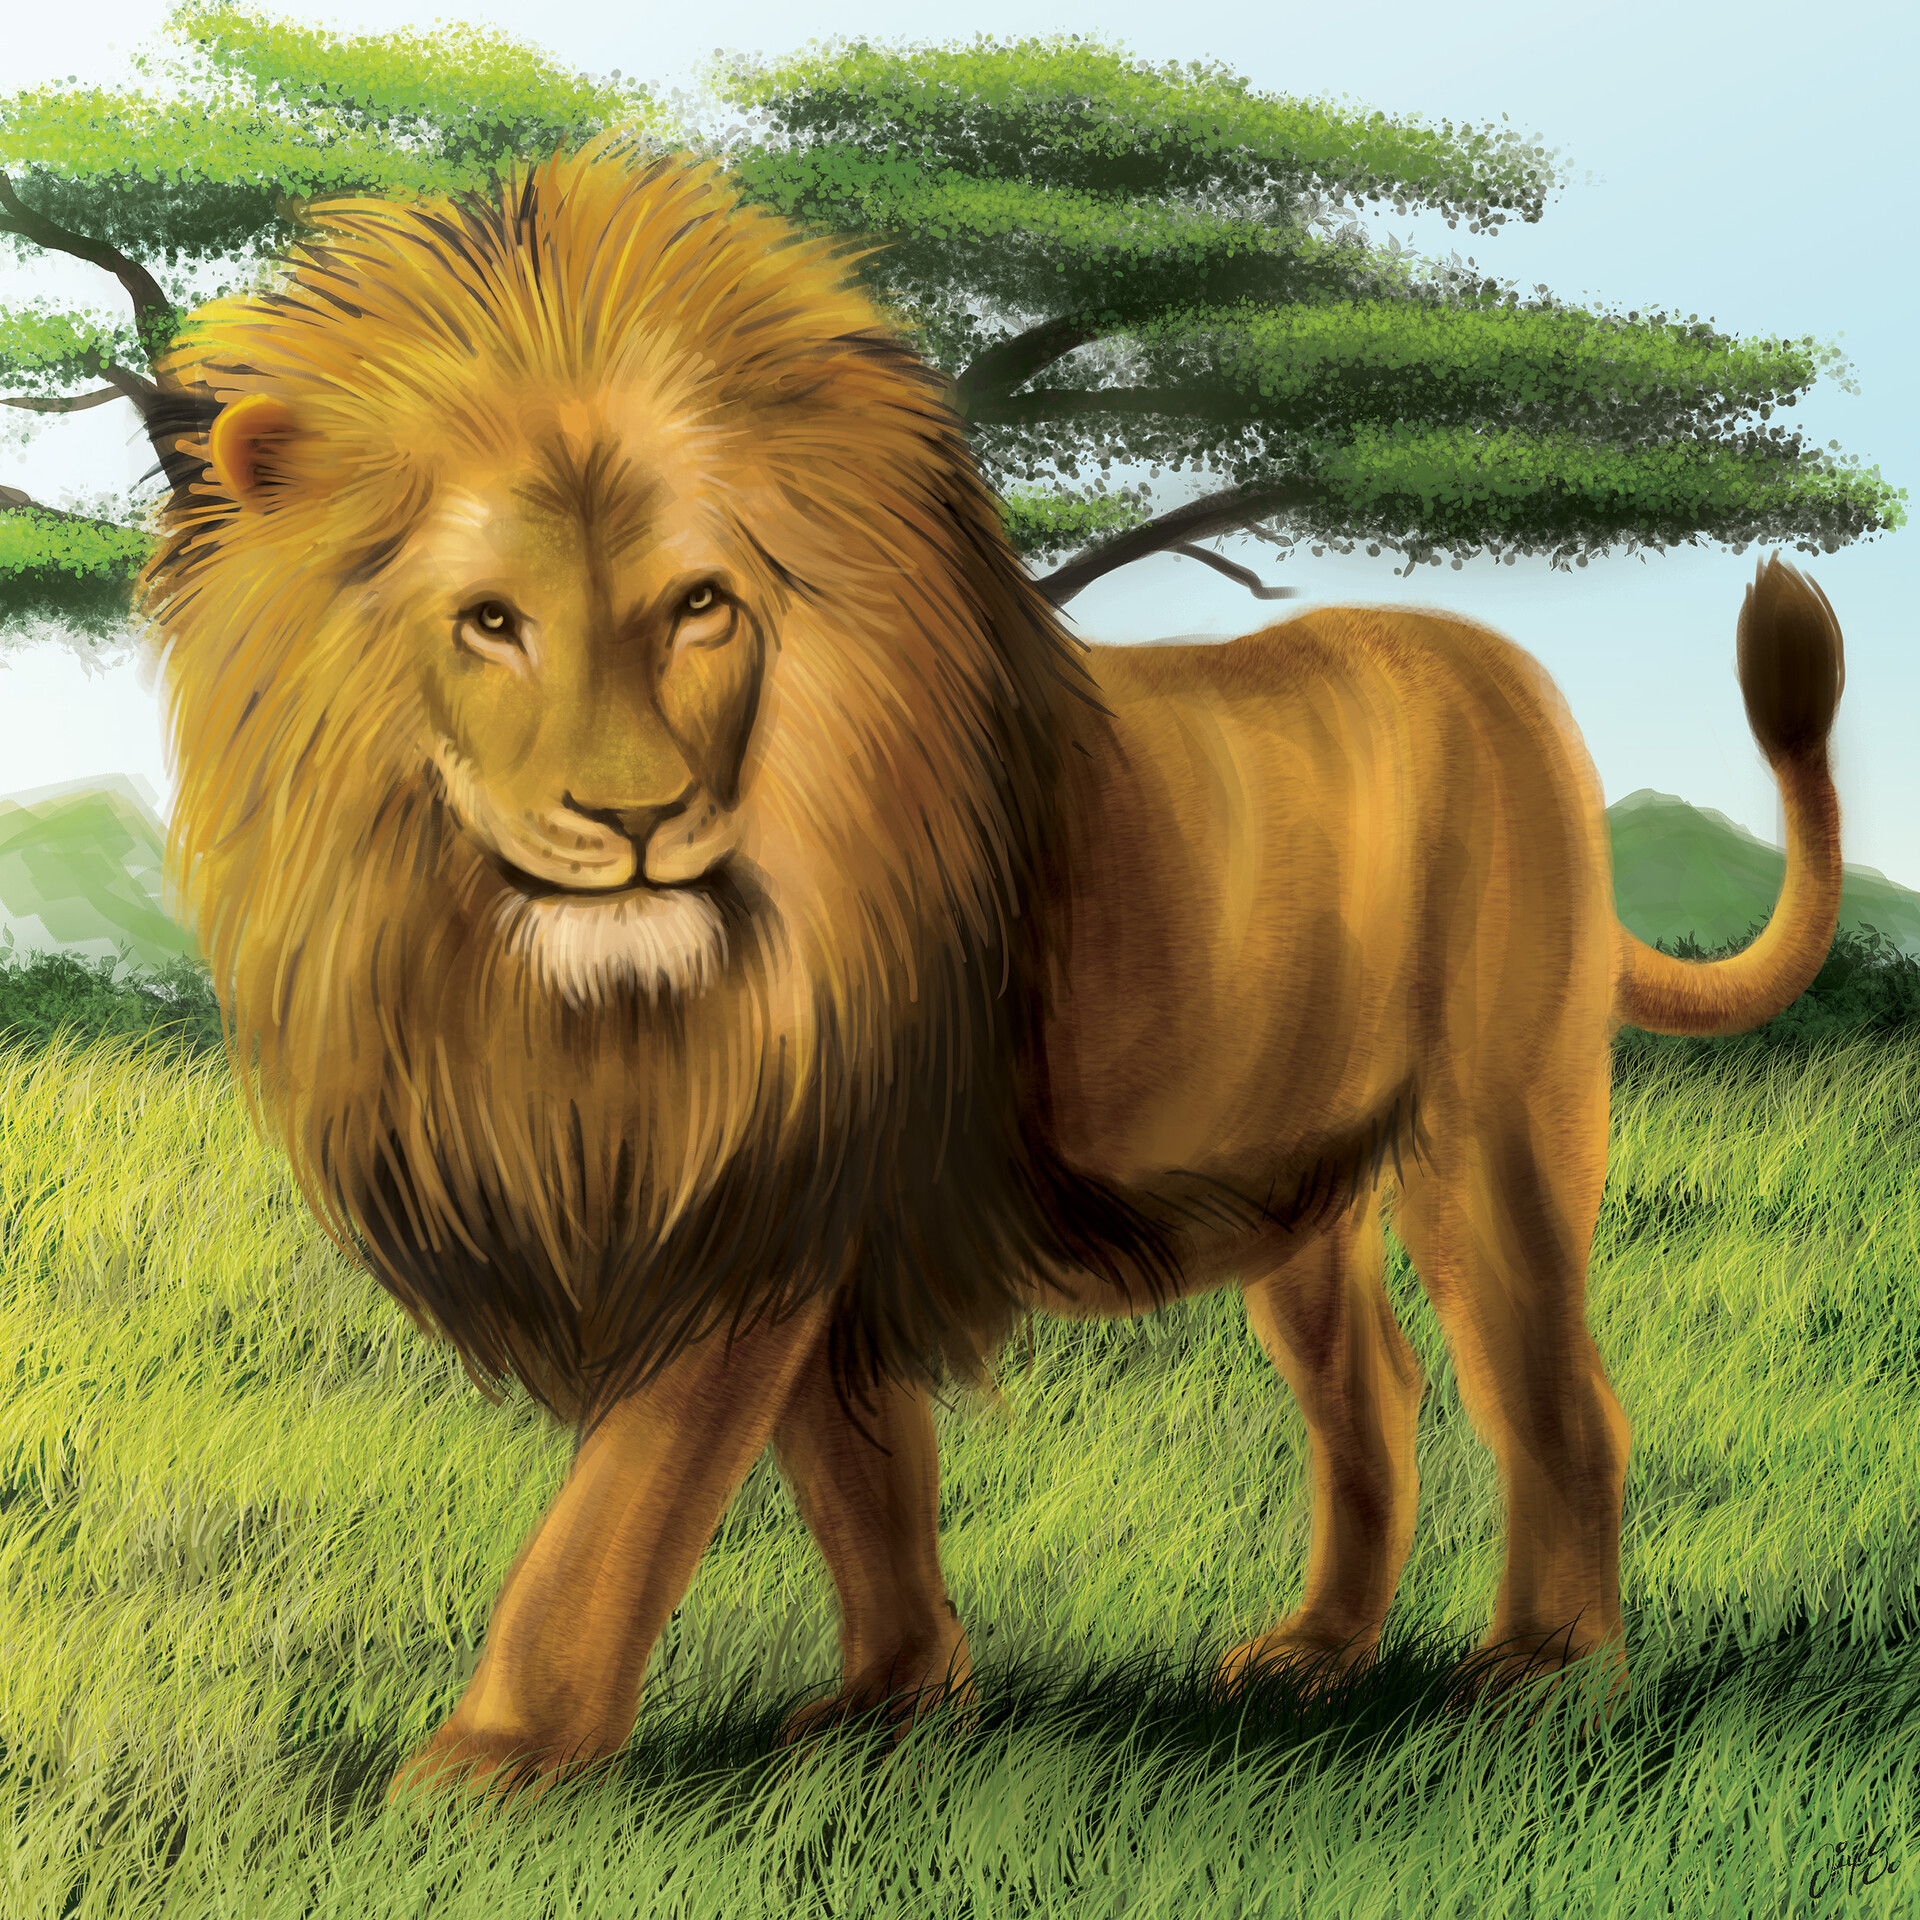 Tile illustration - Lion